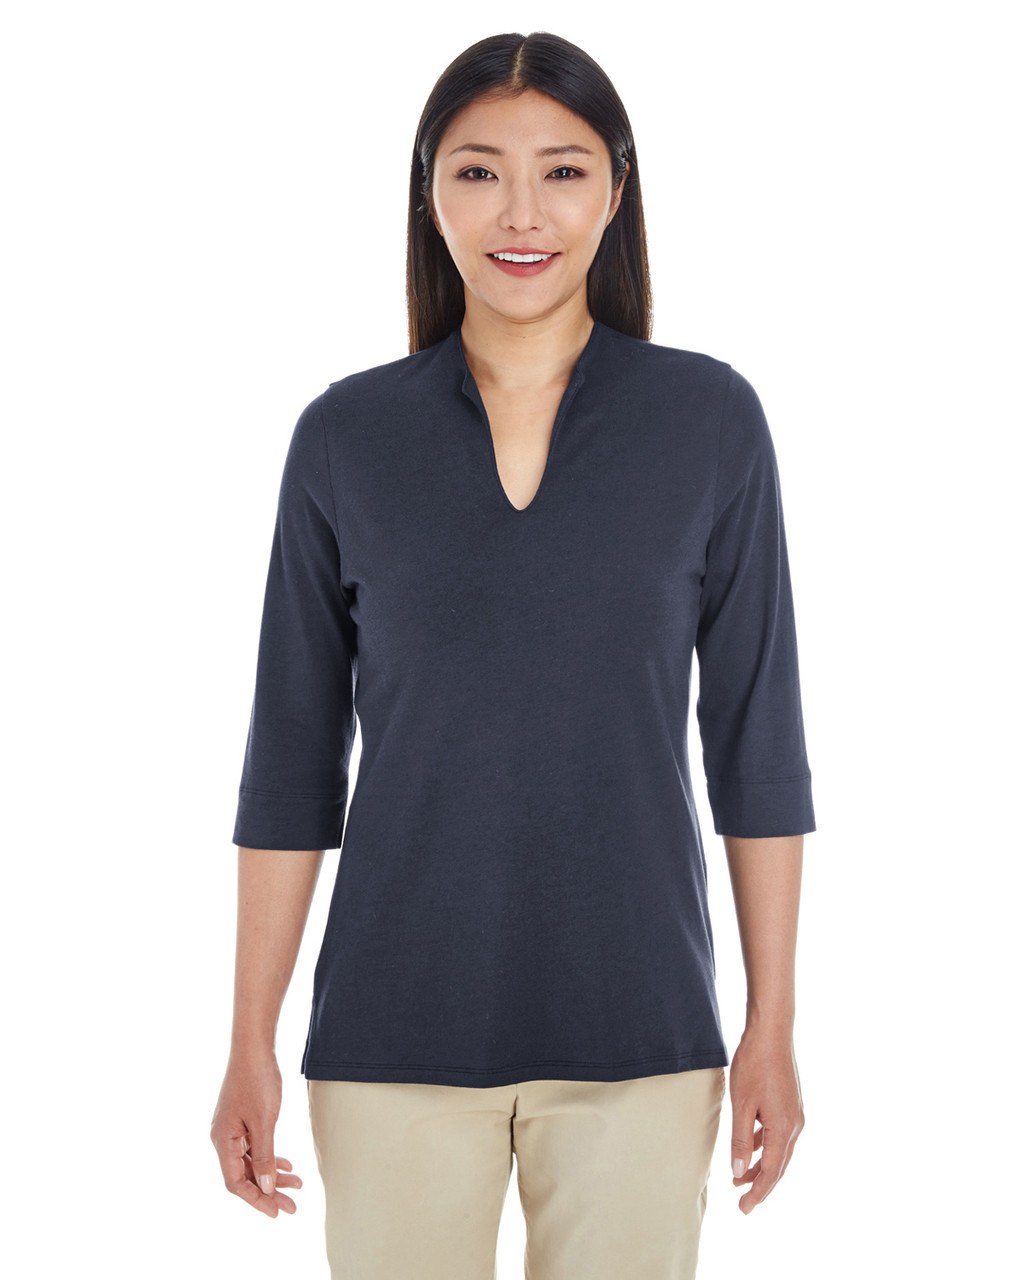 Navy - DP188W Devon & Jones Ladies' Perfect Fit™ Tailored Open Neckline Top